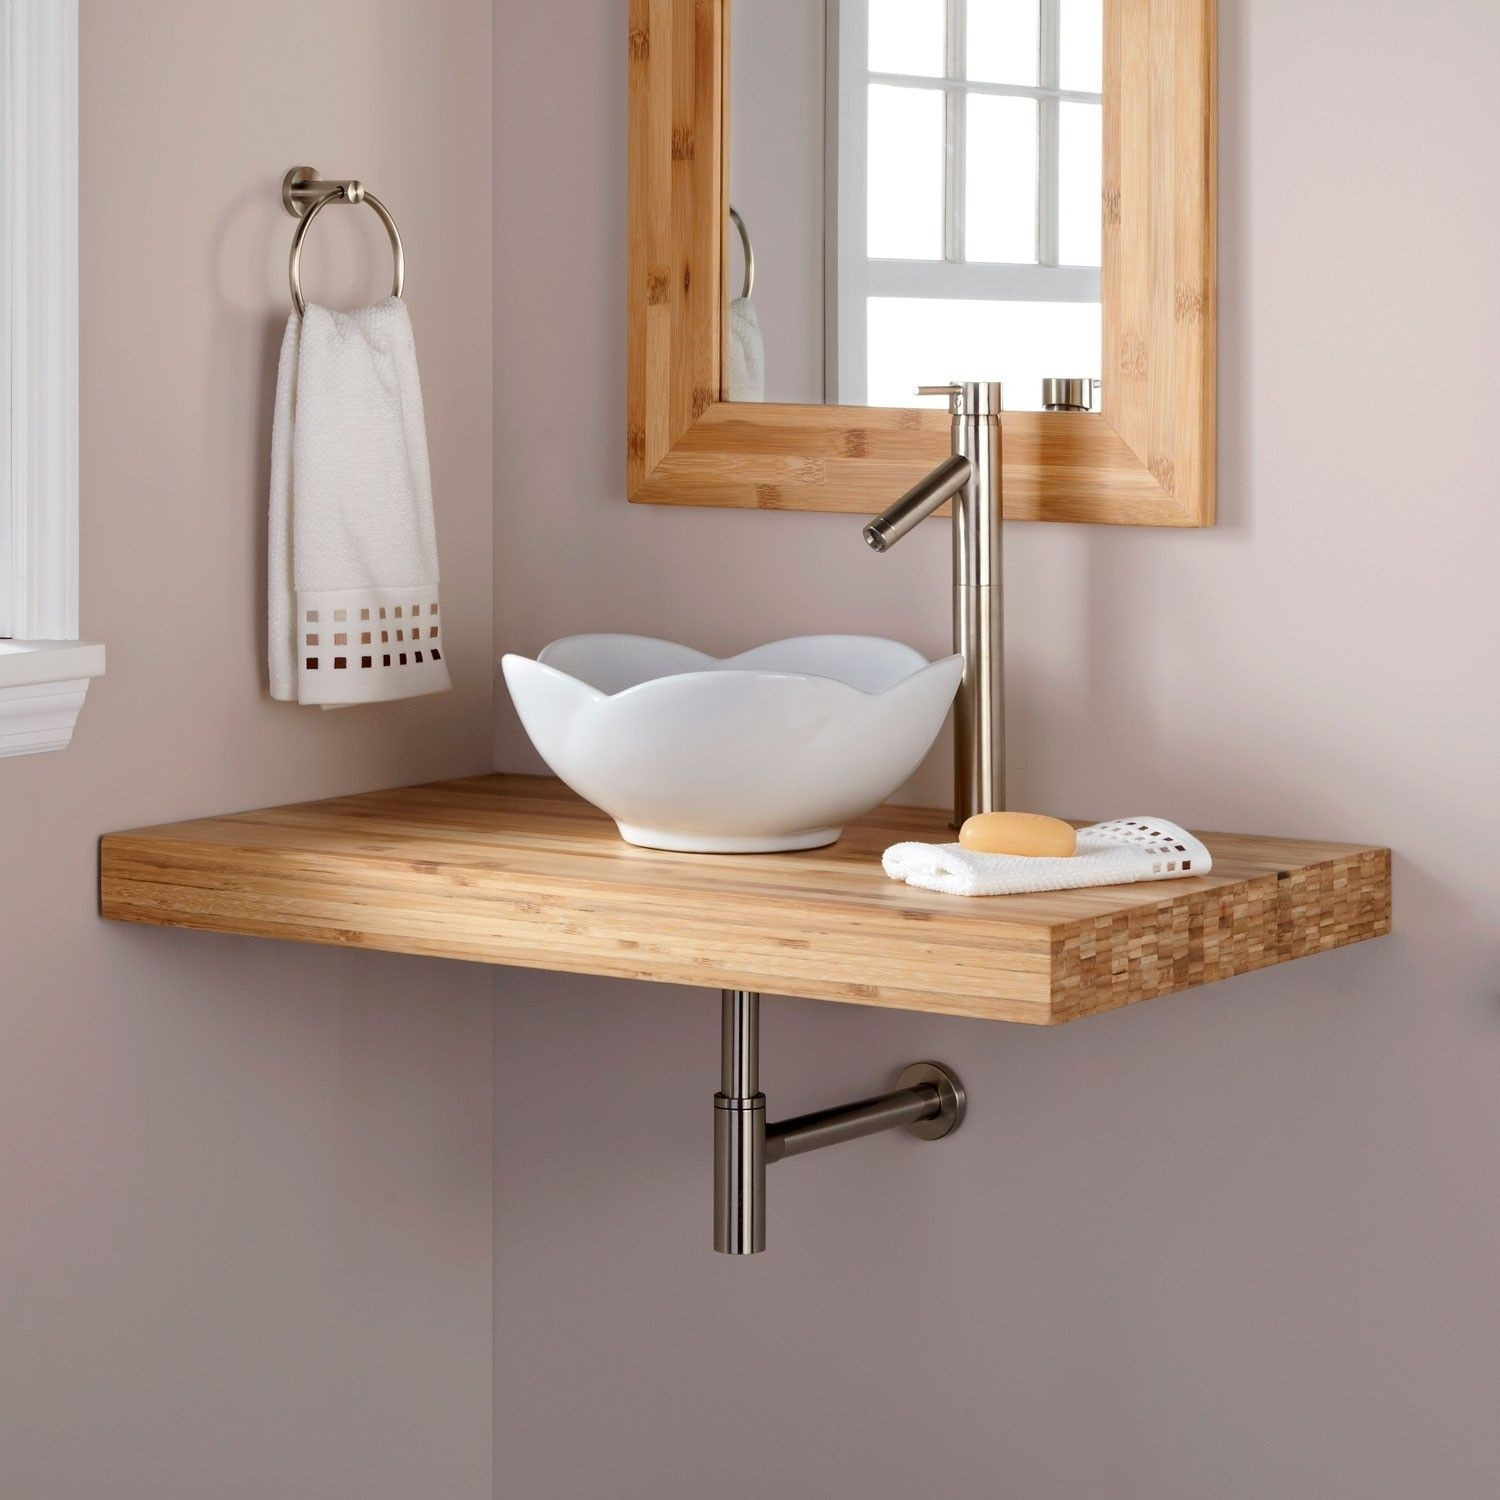 Vanity Tops For Vessel Sinks For 2020 Ideas On Foter